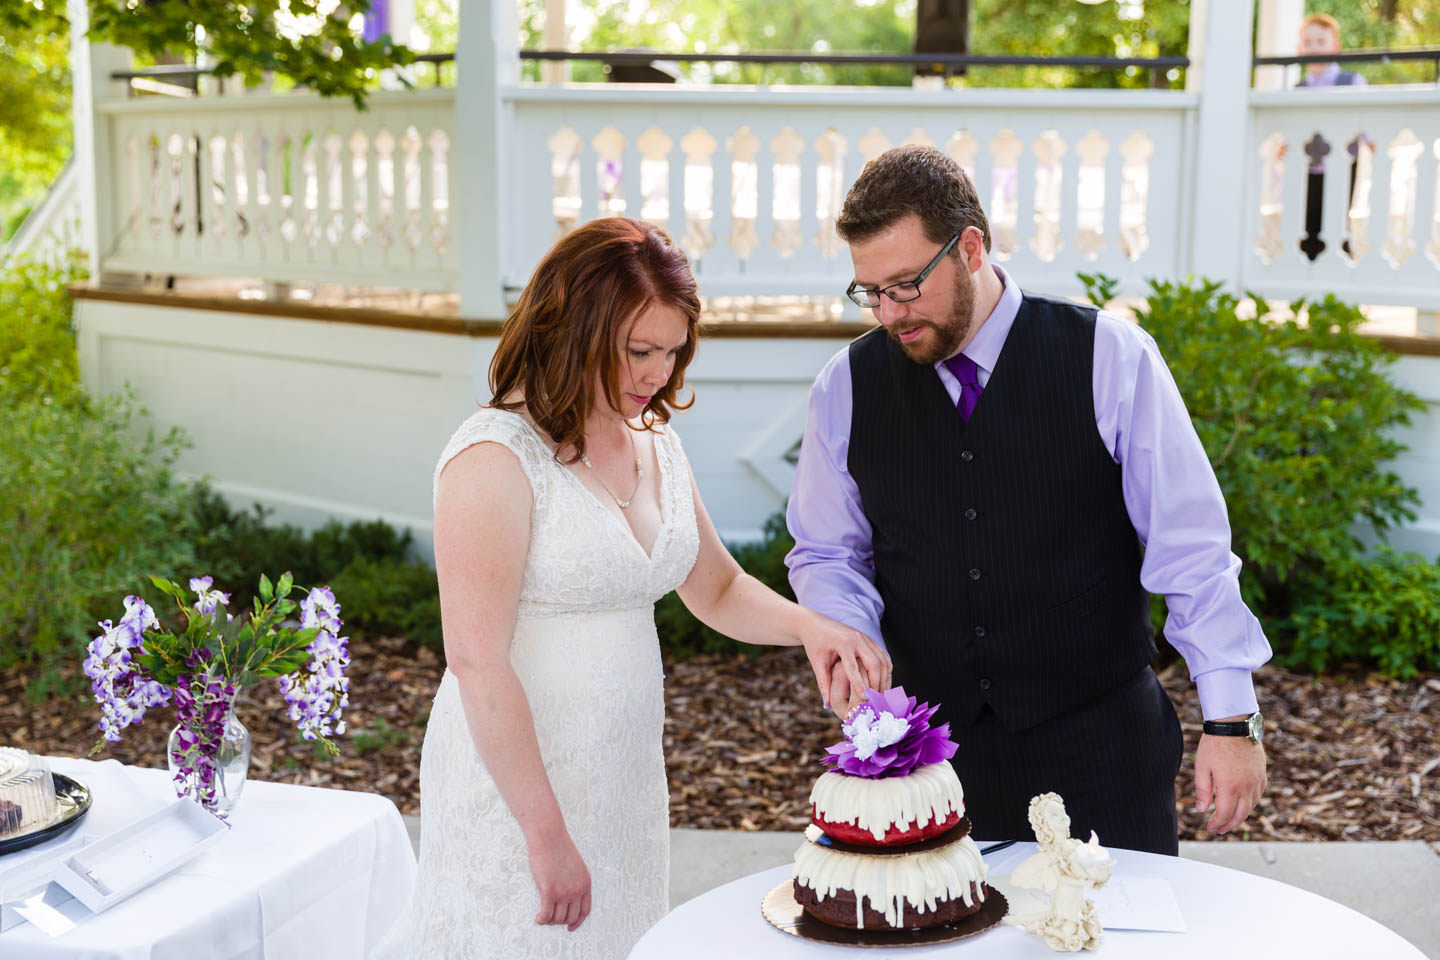 Cutting the wedding cake. It was red velvet.